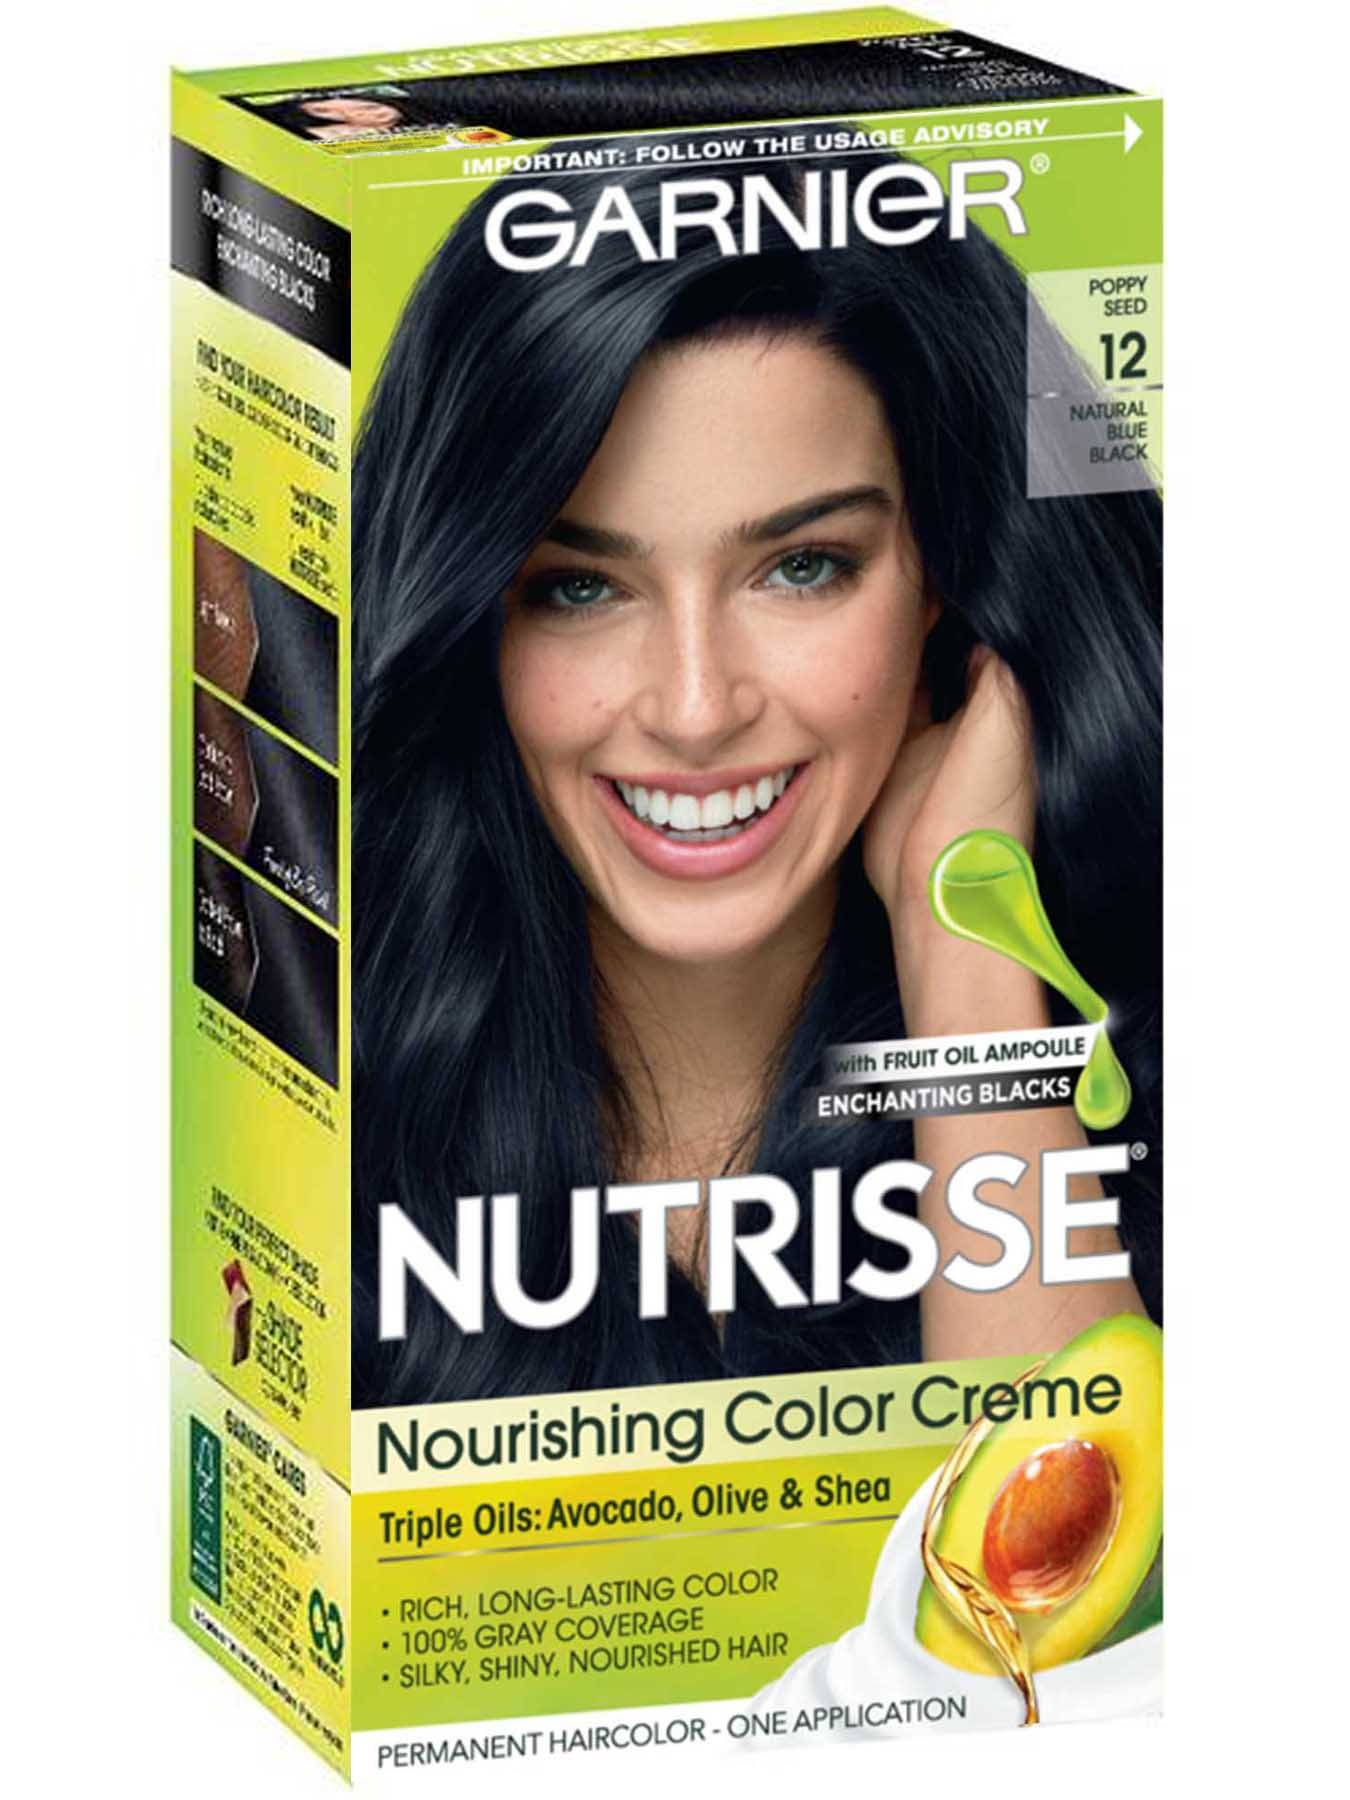 garnier nutrisse creme hair color instructions